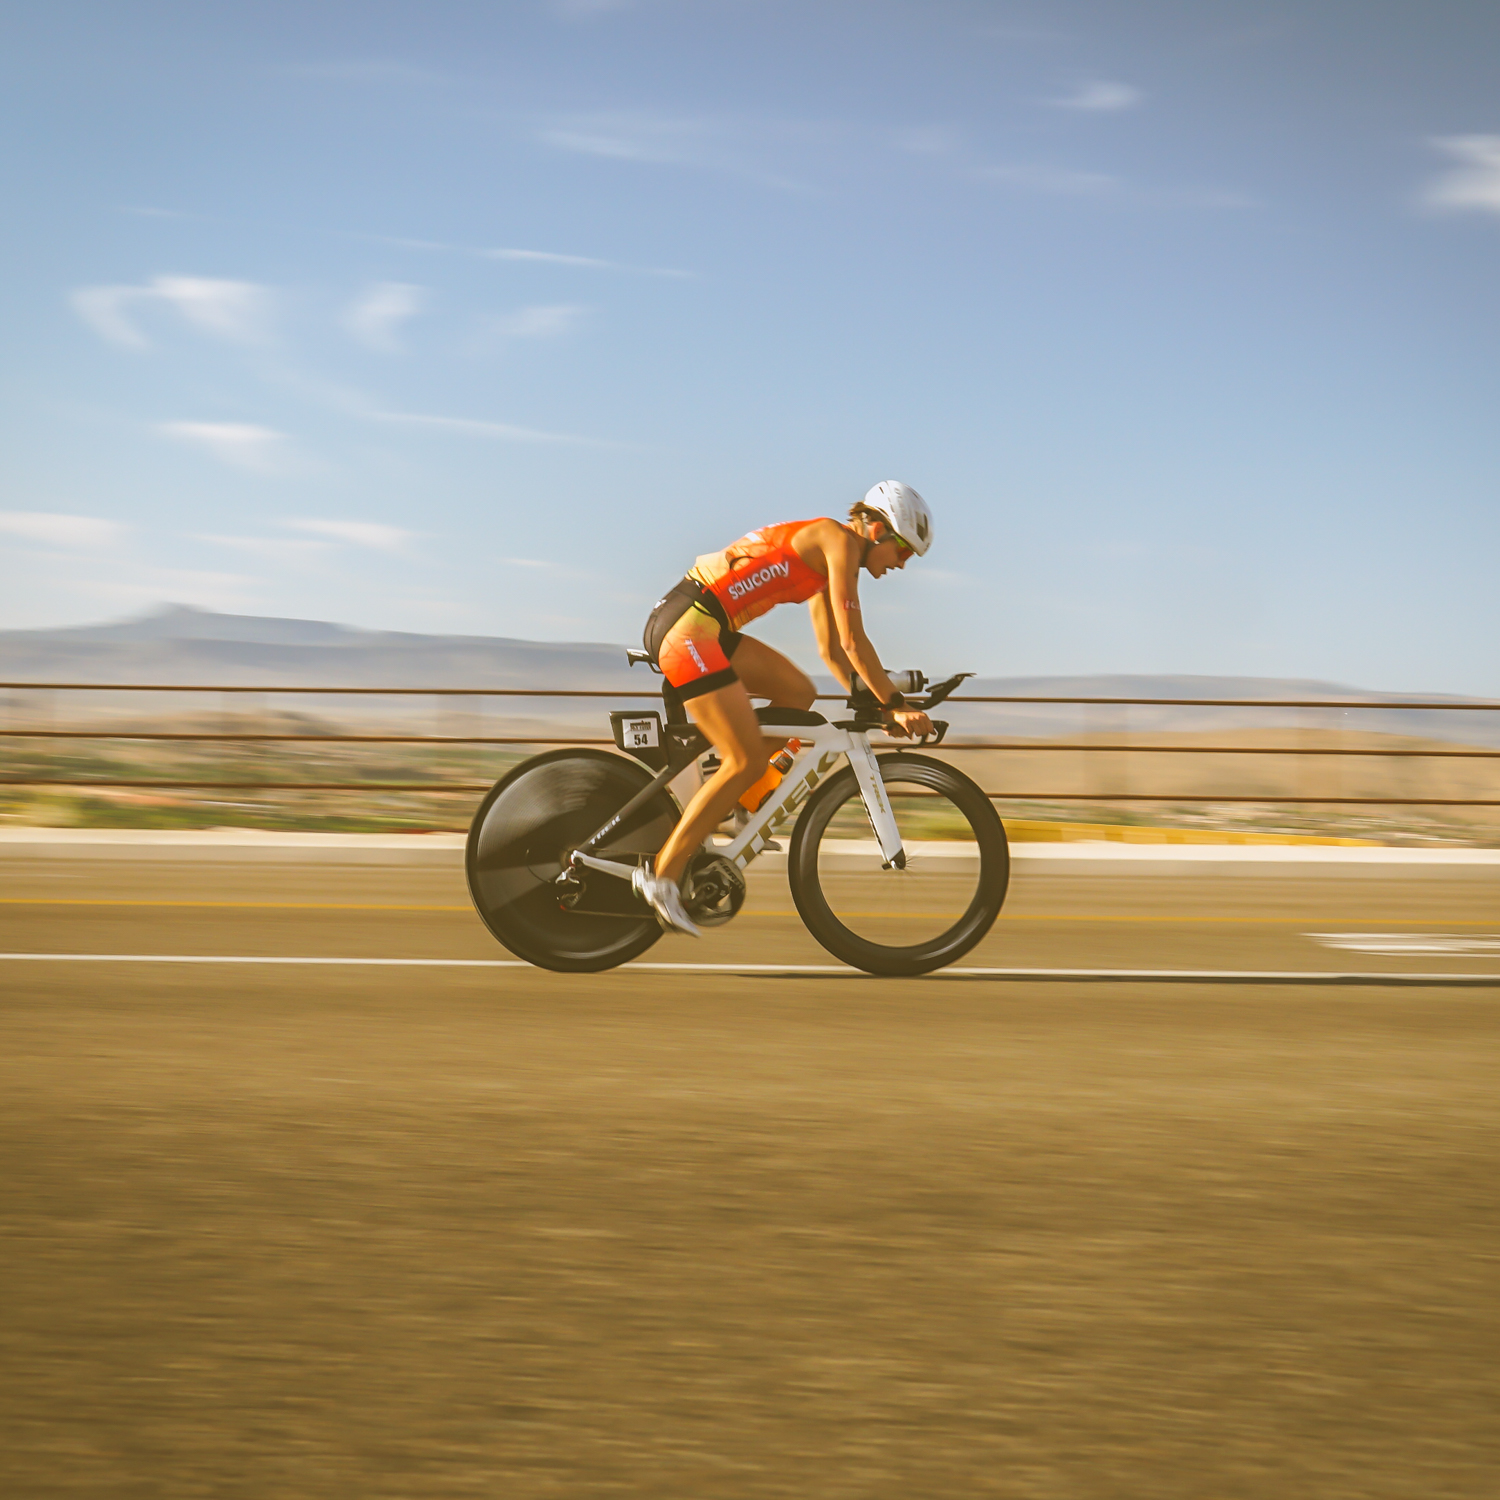 Ironman 70.3 St. George 2015